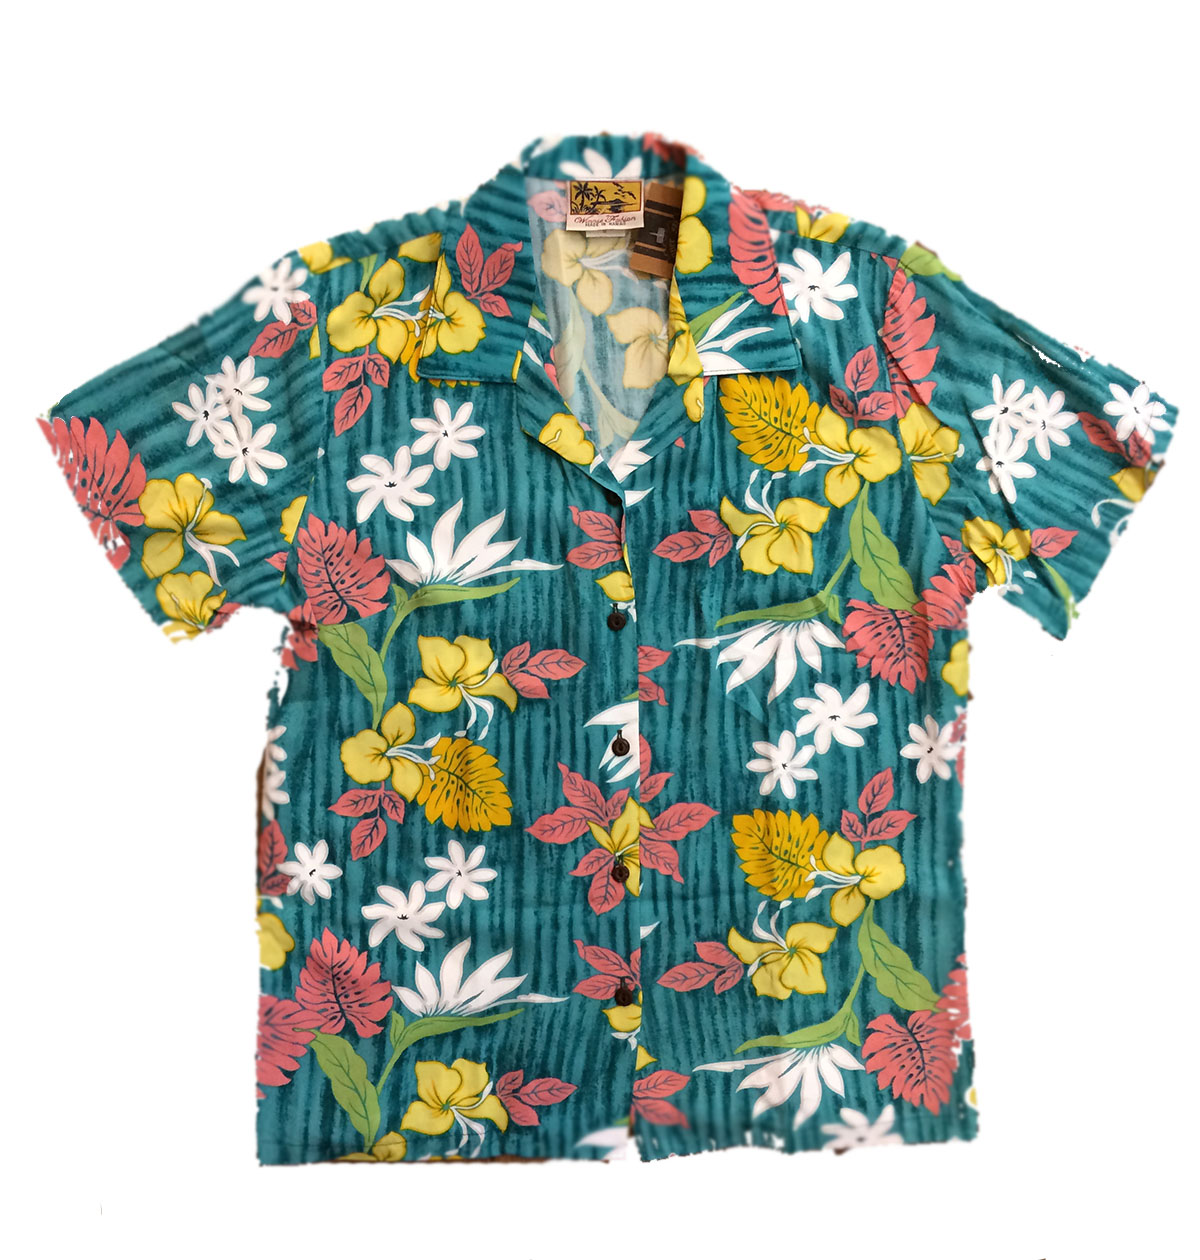 ce11b059e CAMISA HAWAIANA CHICA WINNIE FASHION A HUNDRED SUNSETS